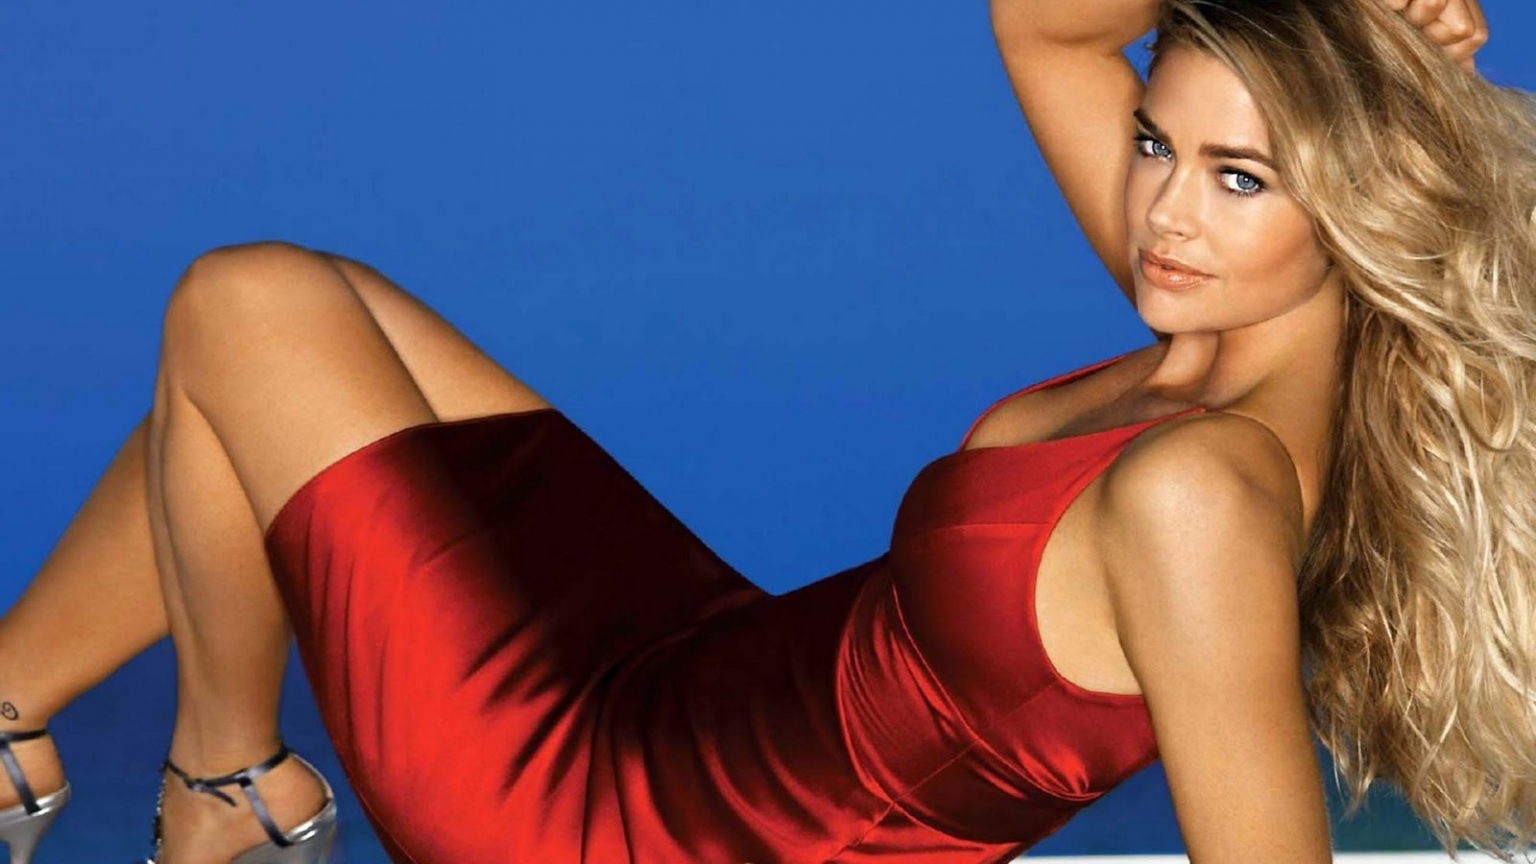 Denise Richards Red Dress for 1536 x 864 HDTV resolution